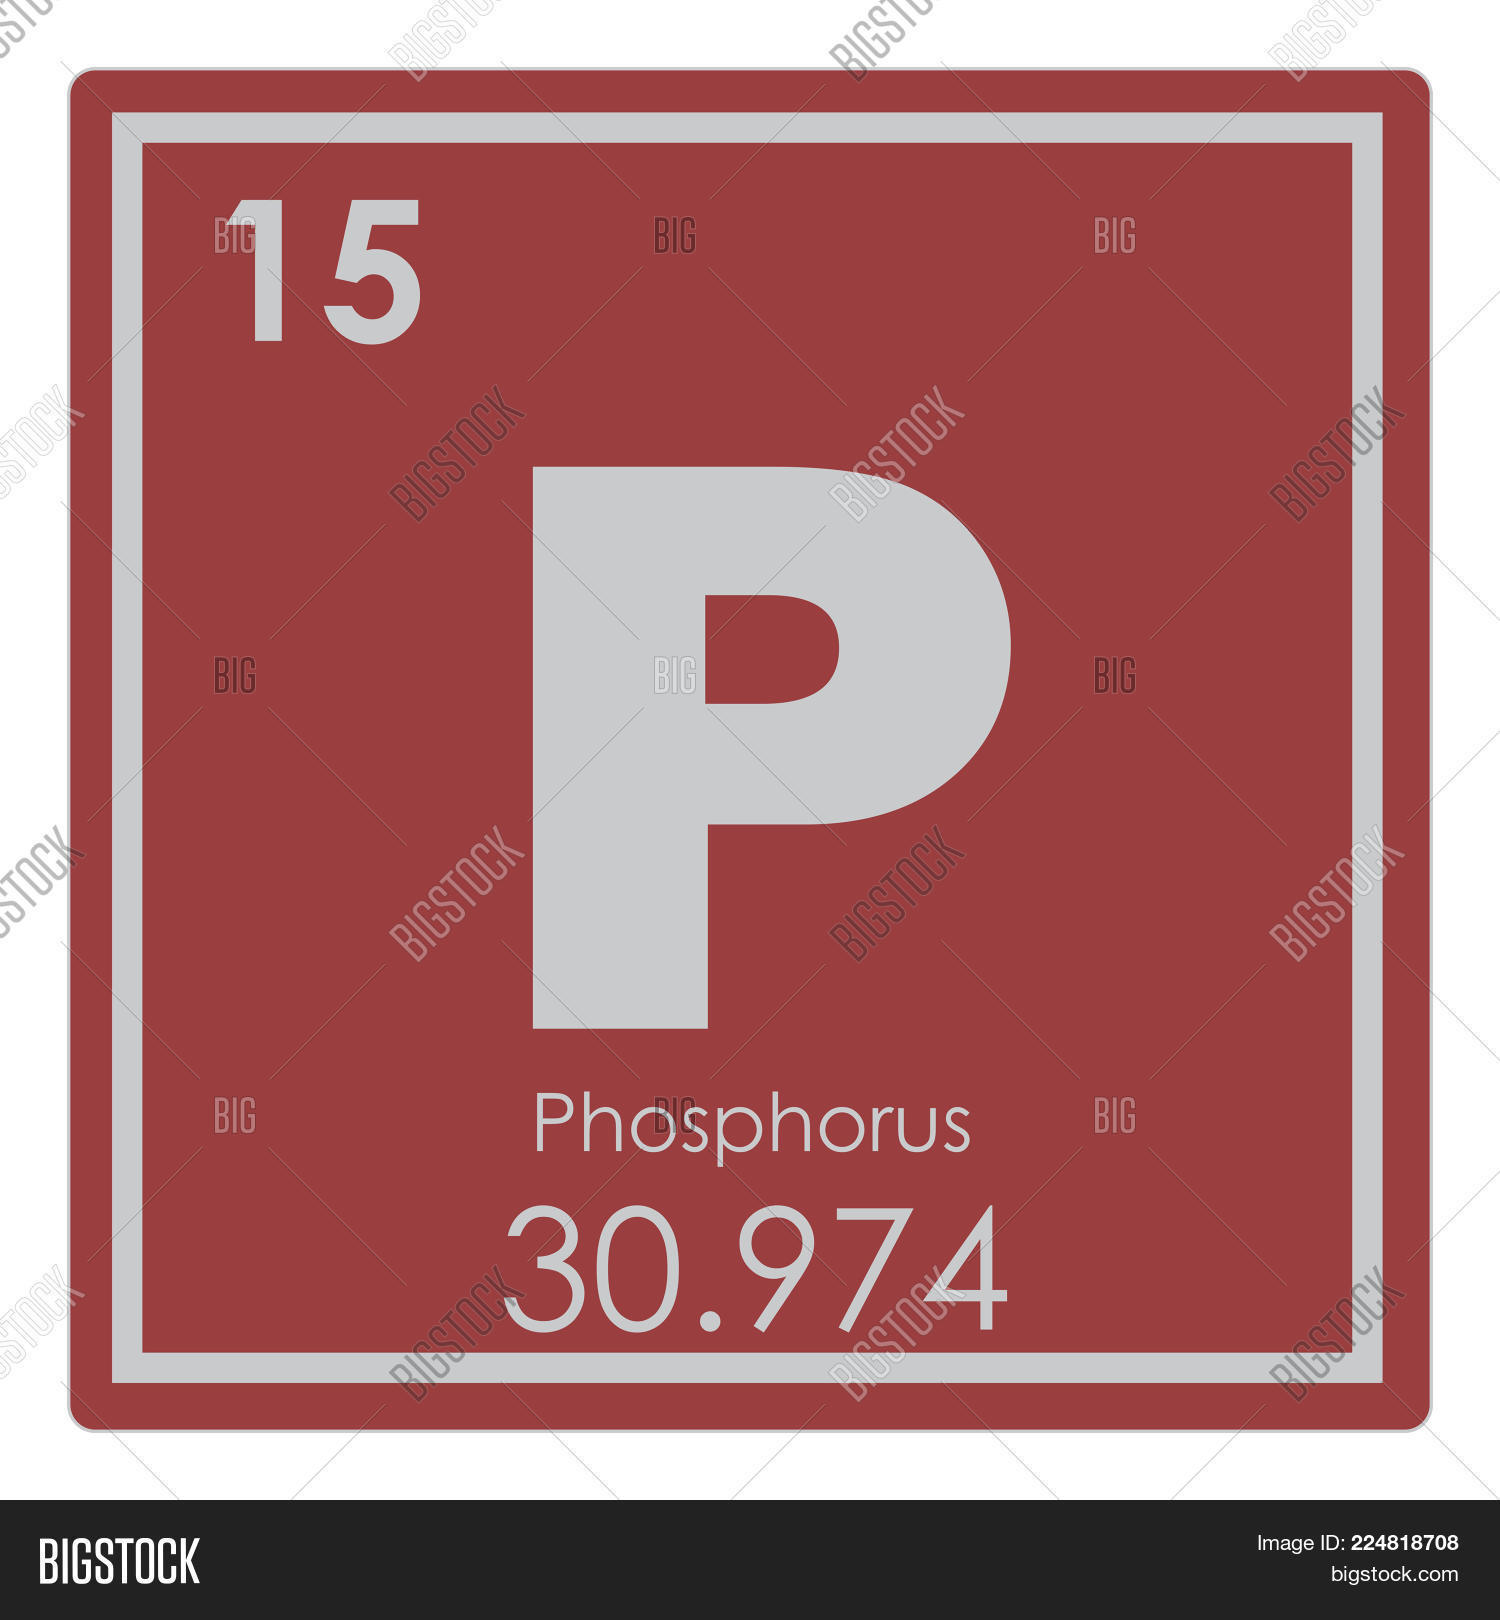 Phosphorus Chemical Image Photo Free Trial Bigstock